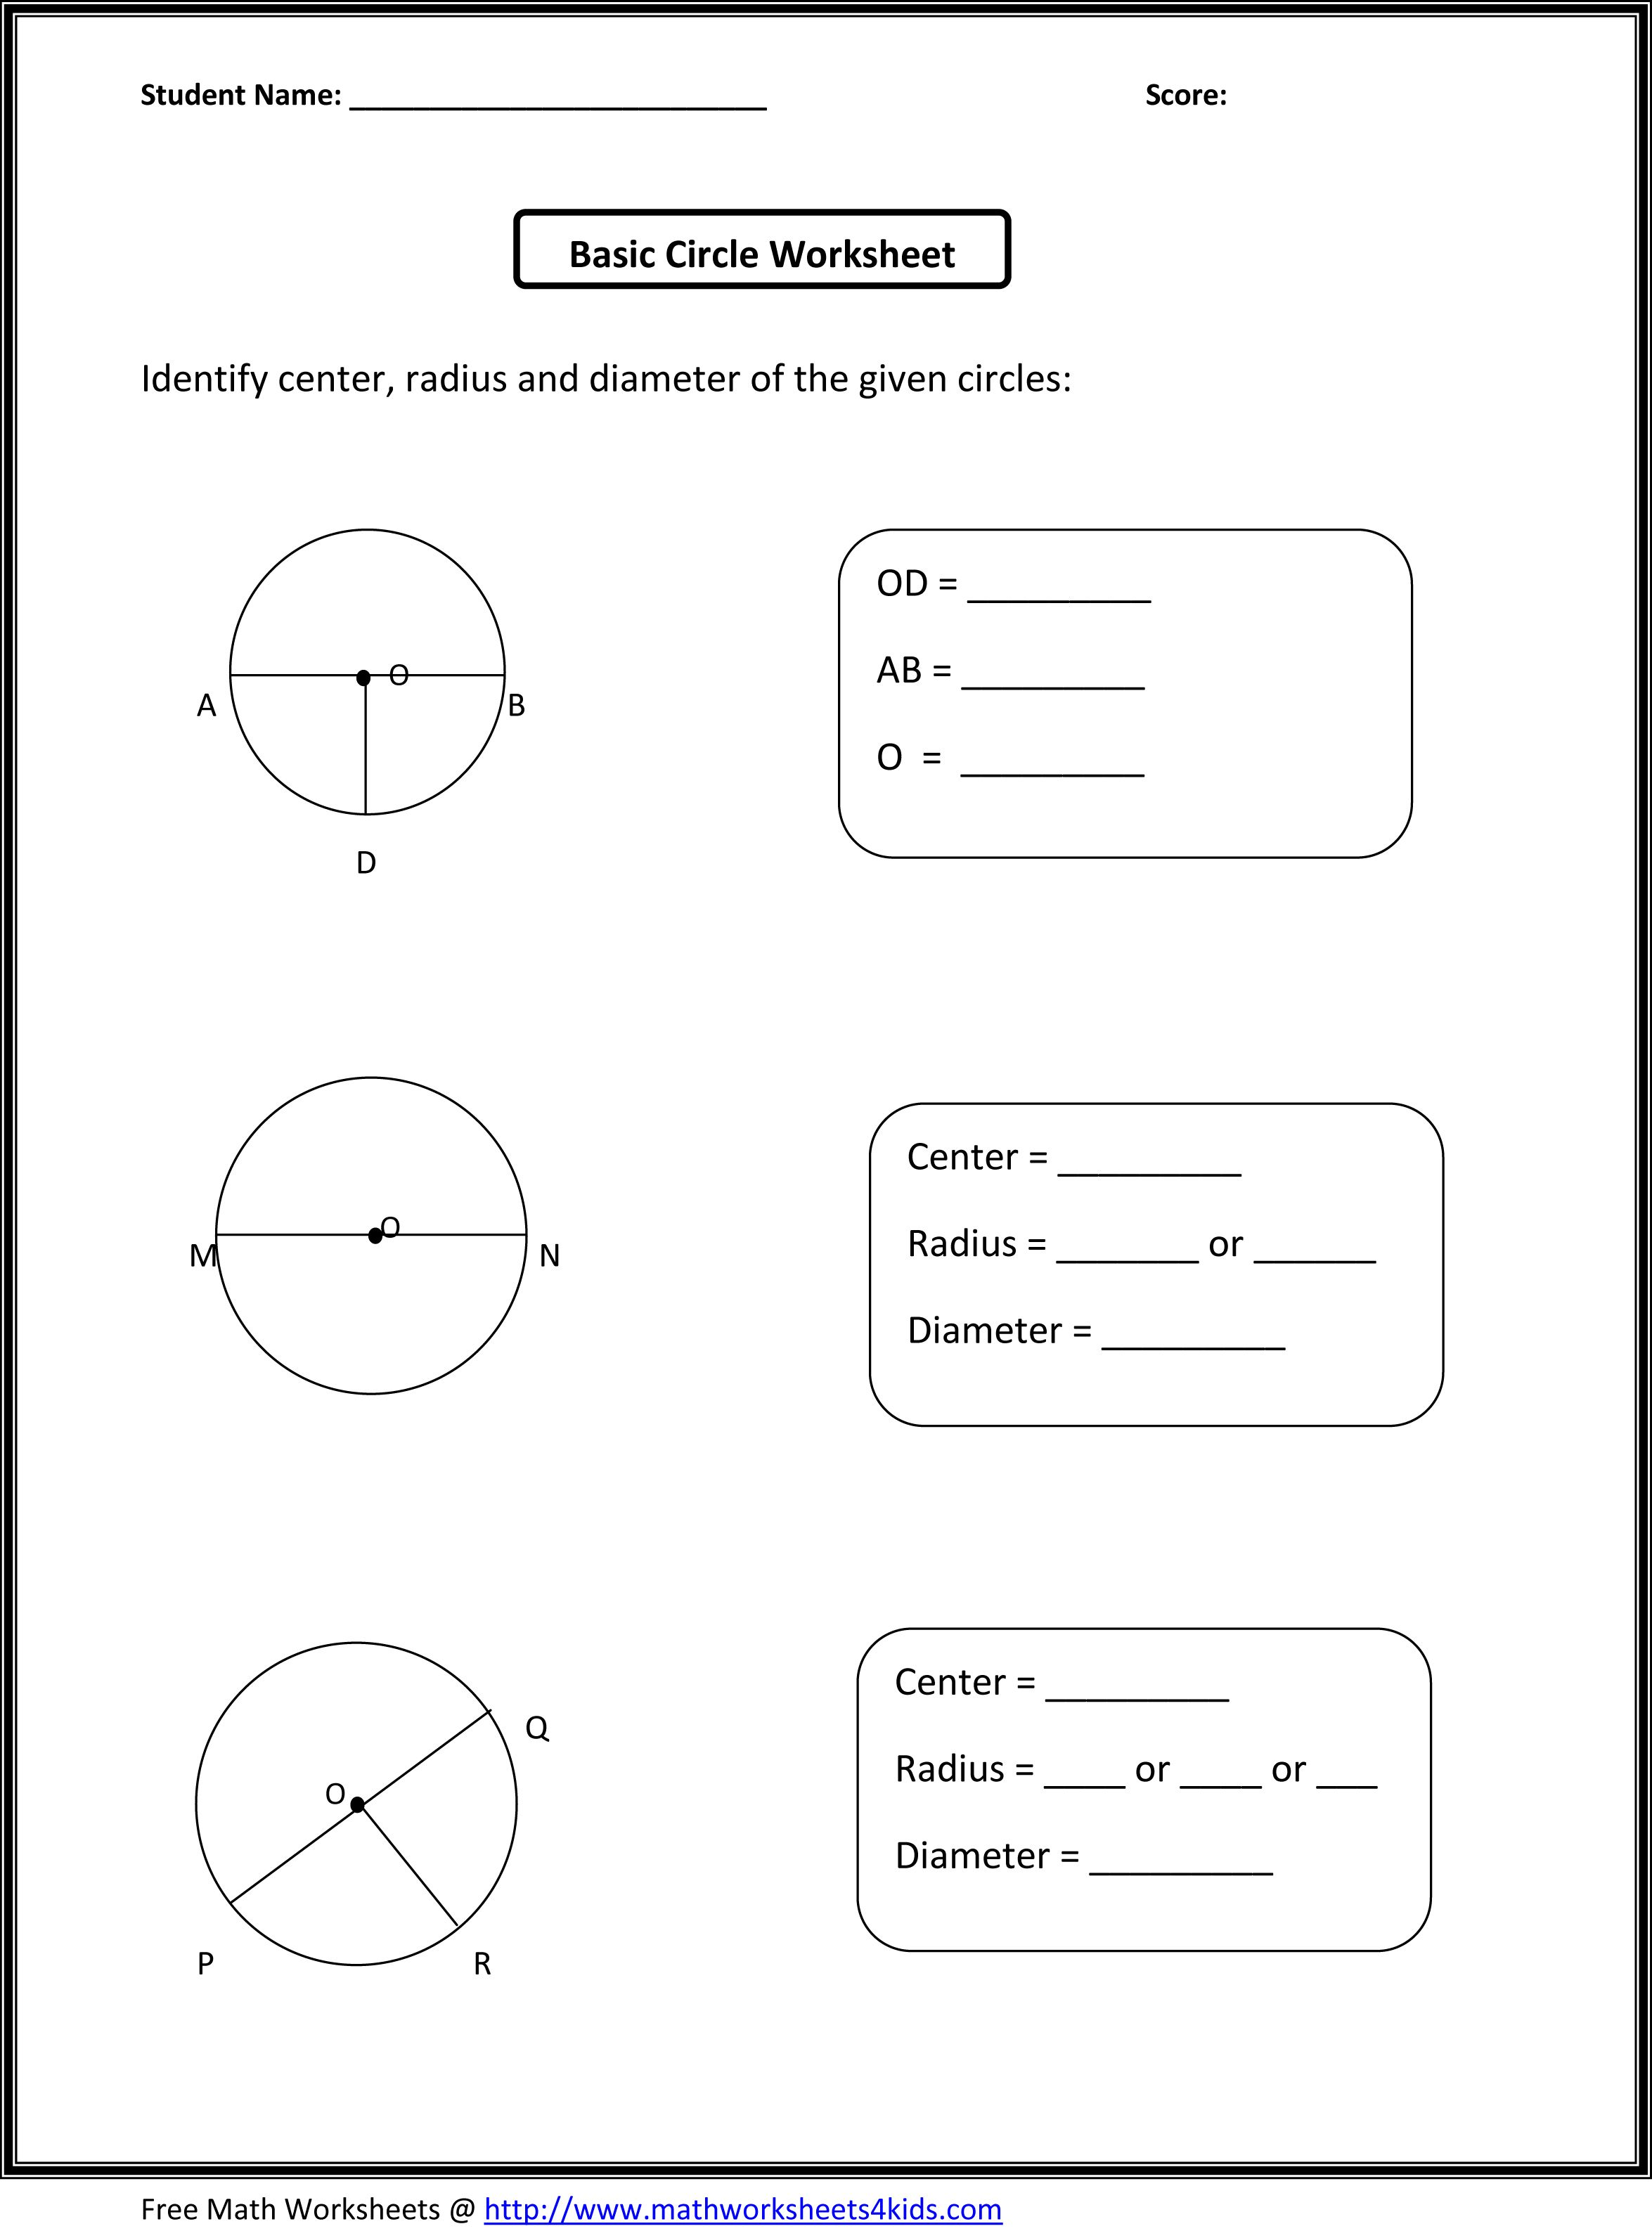 Worksheets 3rd Grade Math Review Worksheets basic circle worksheets math charts pinterest worksheets